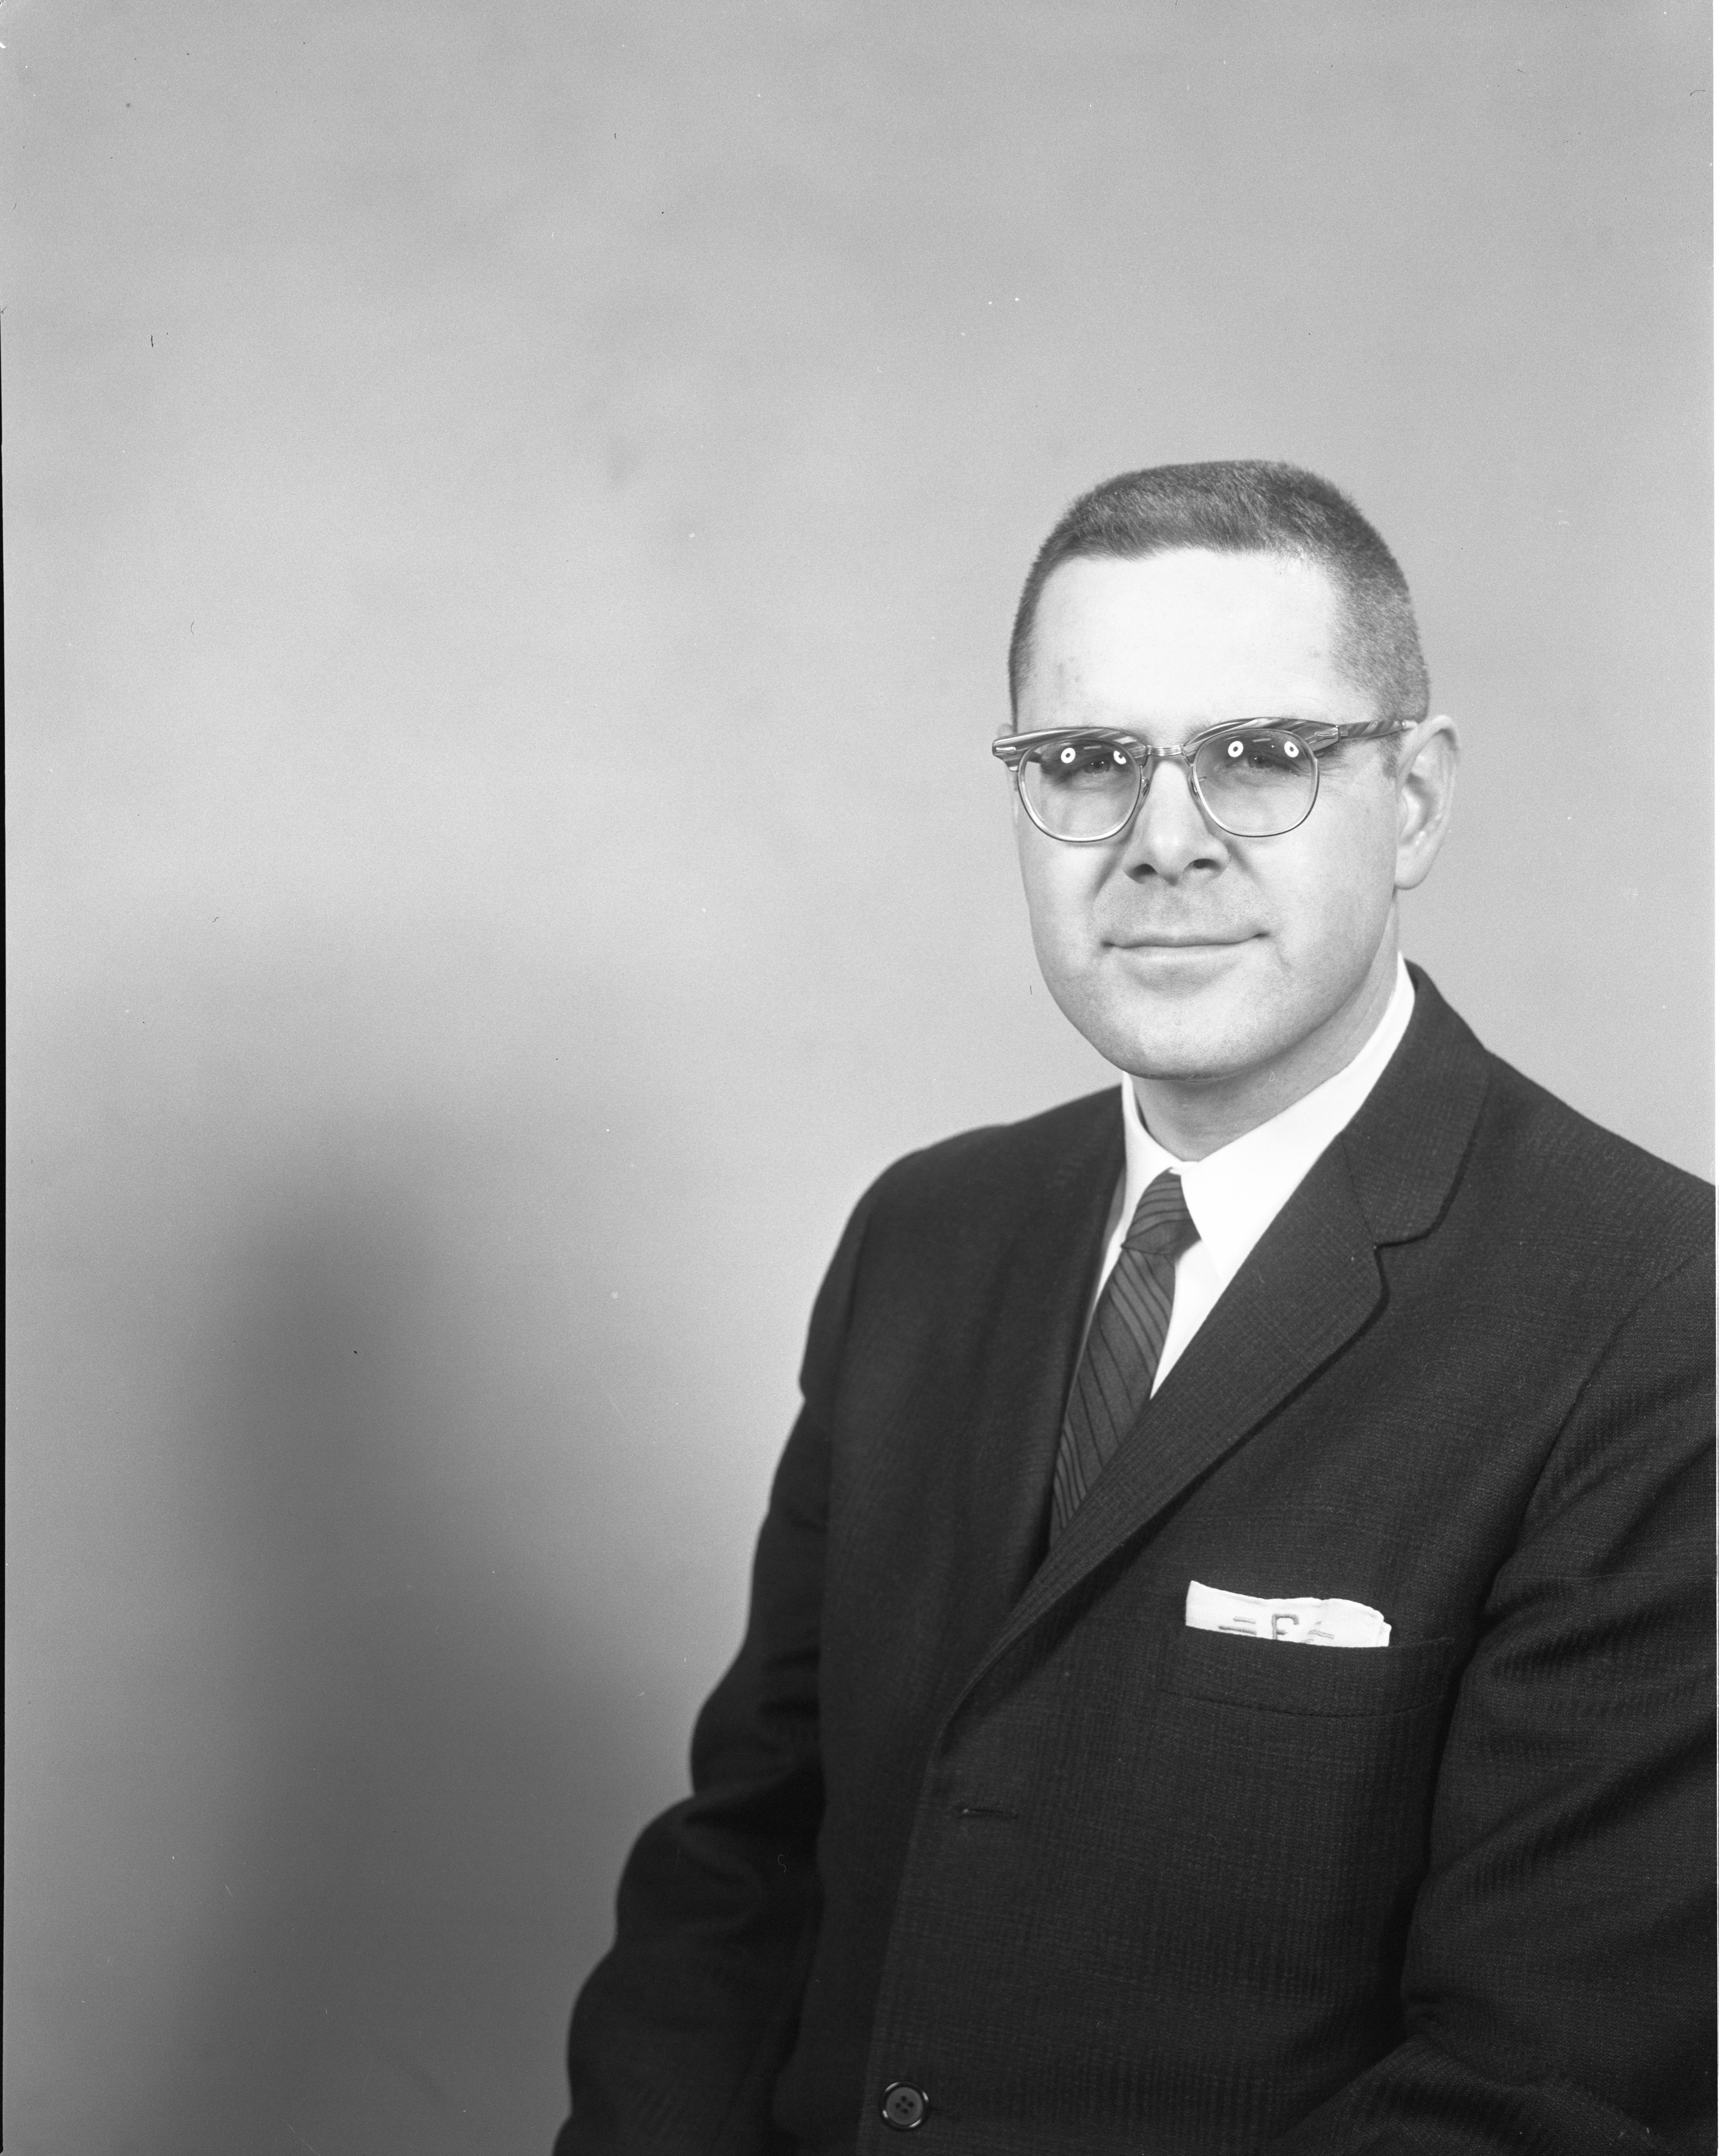 Fred Eibler, Realtor - The Butts & Swisher Co., February 1963 image